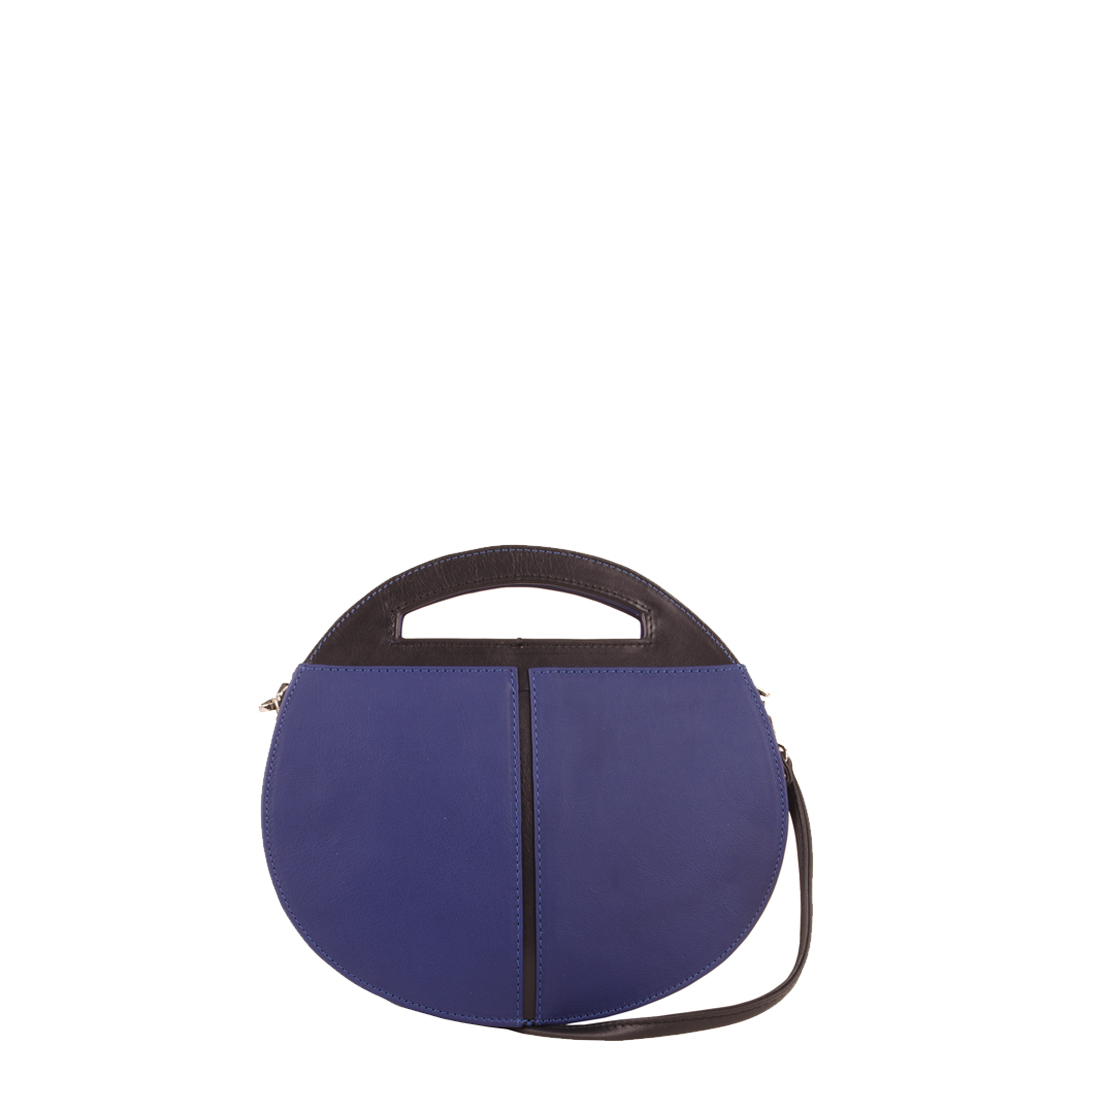 Olivia Blue with black Leather Shoulder Bag